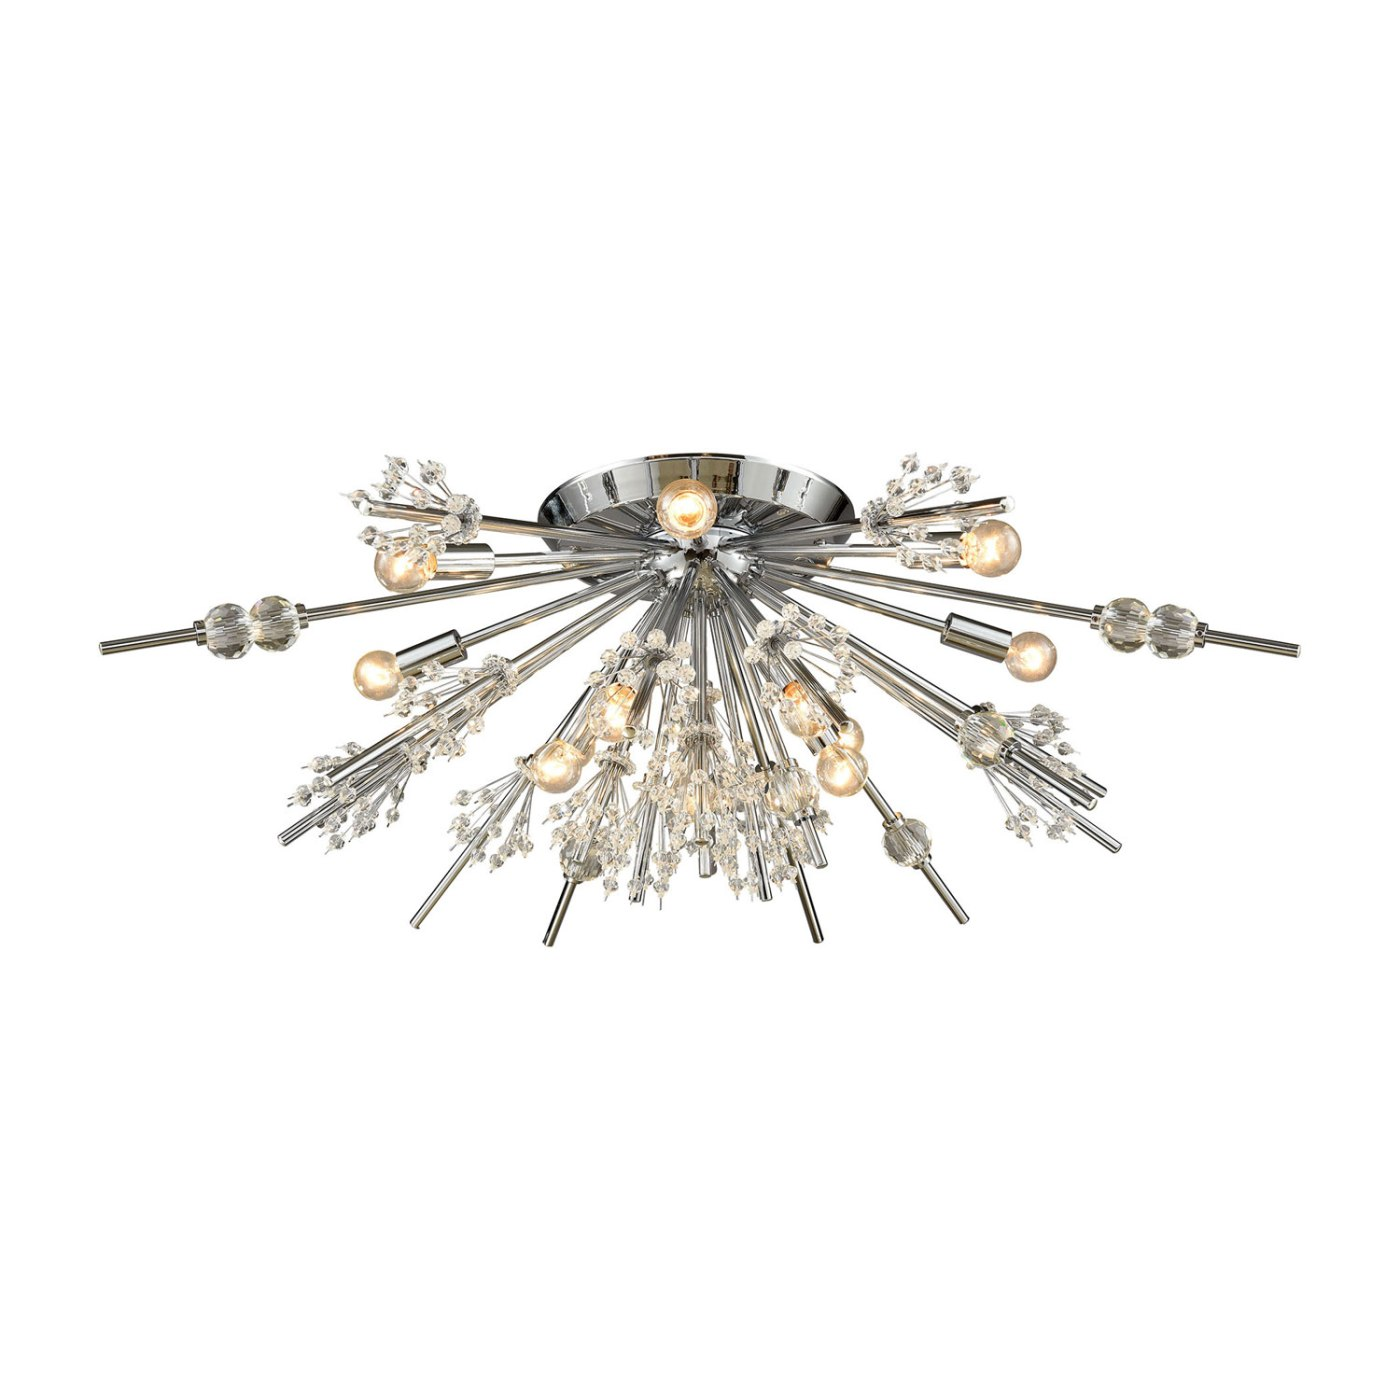 Elk Lighting Starburst Polished Chrome 34-Inch 12-Light Semi-Flush Mount via Bellacor | One Room Challenge | Kelly Rogers Interiors